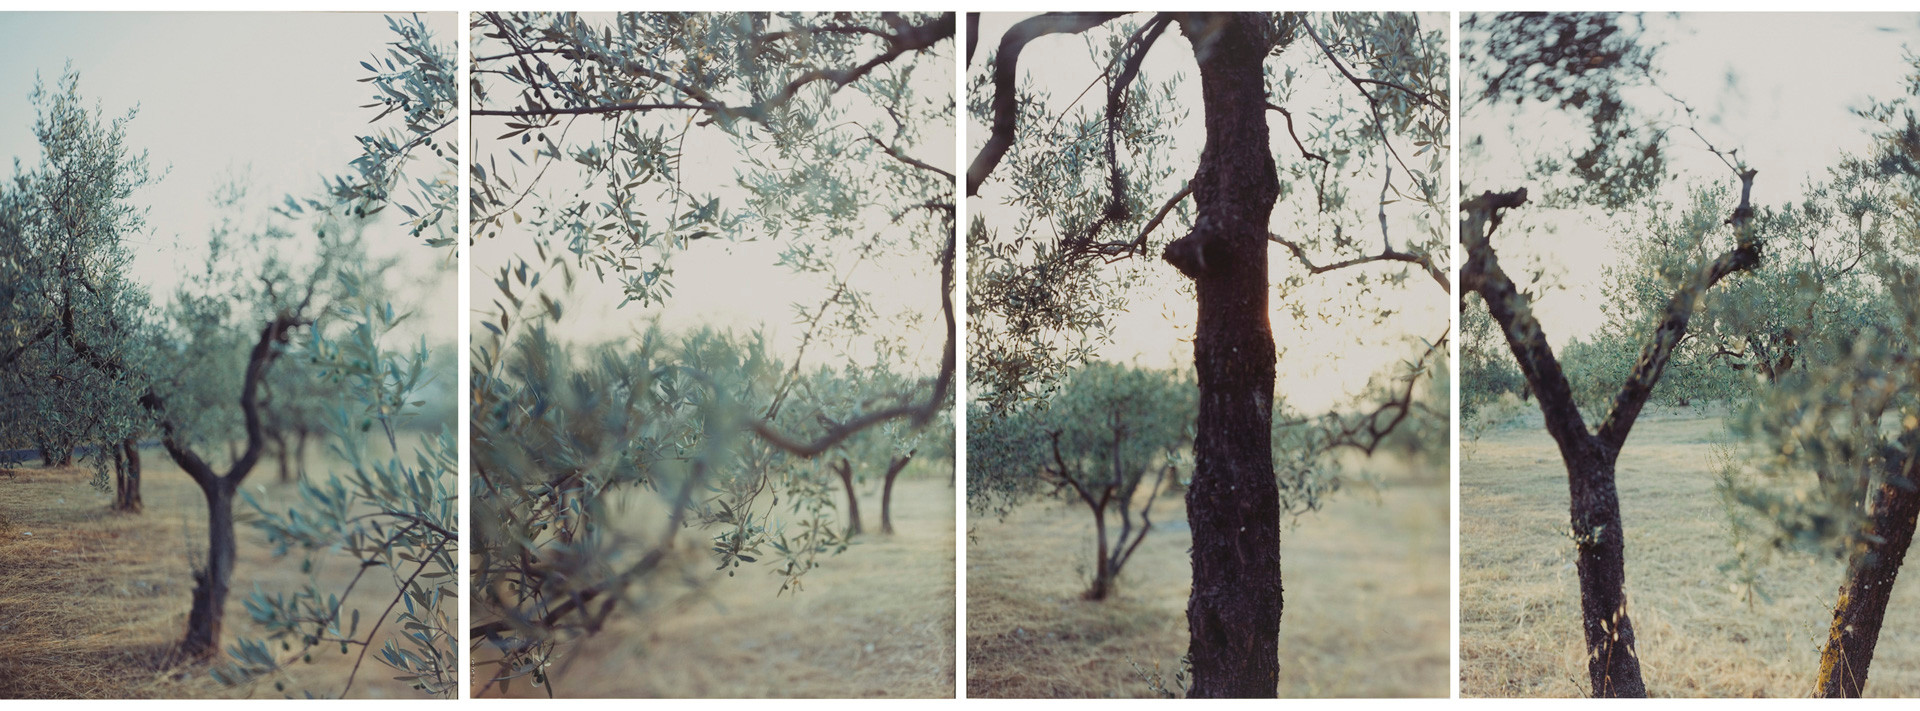 JoAnn Verburg, Olive Trees After The Heat, 1998